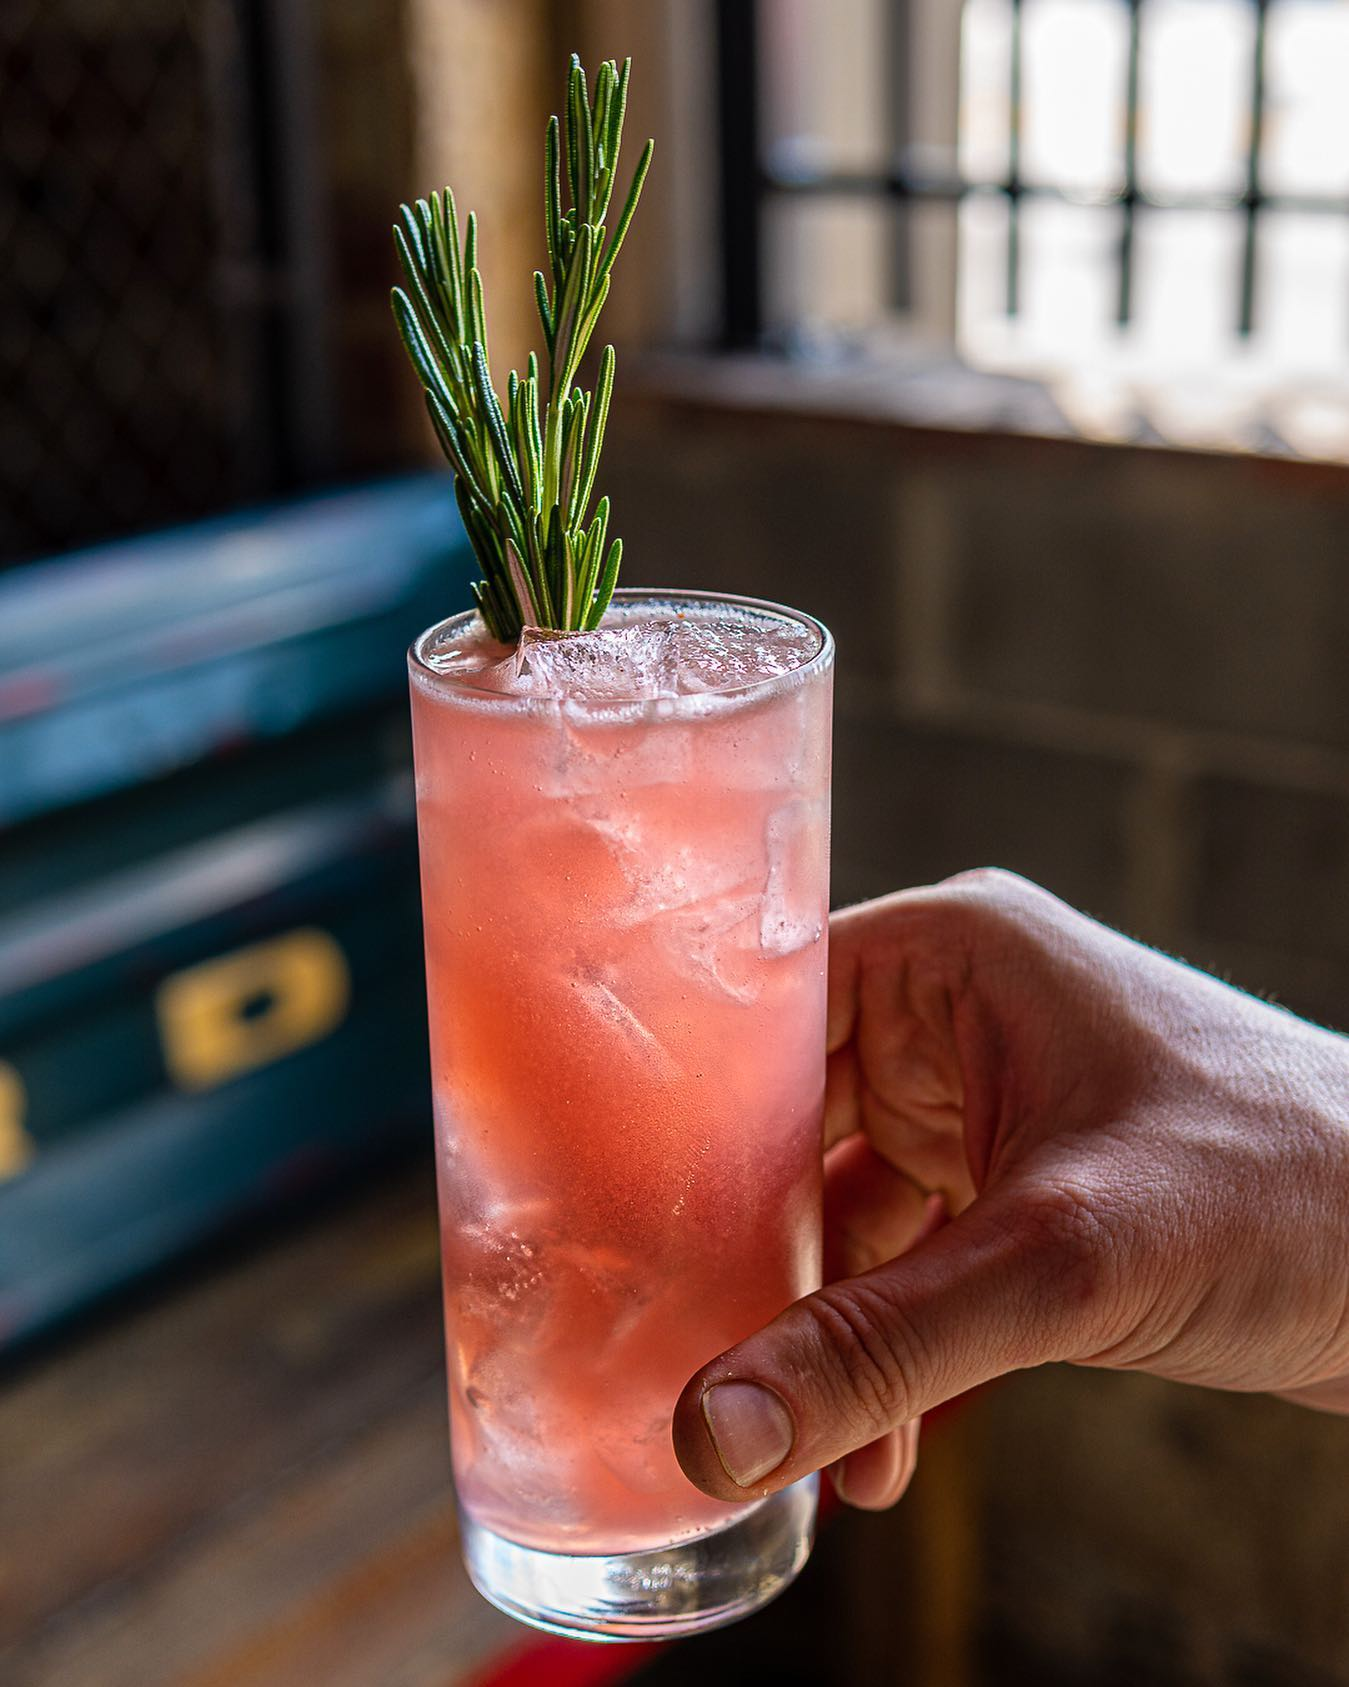 Pink drink and rosemary